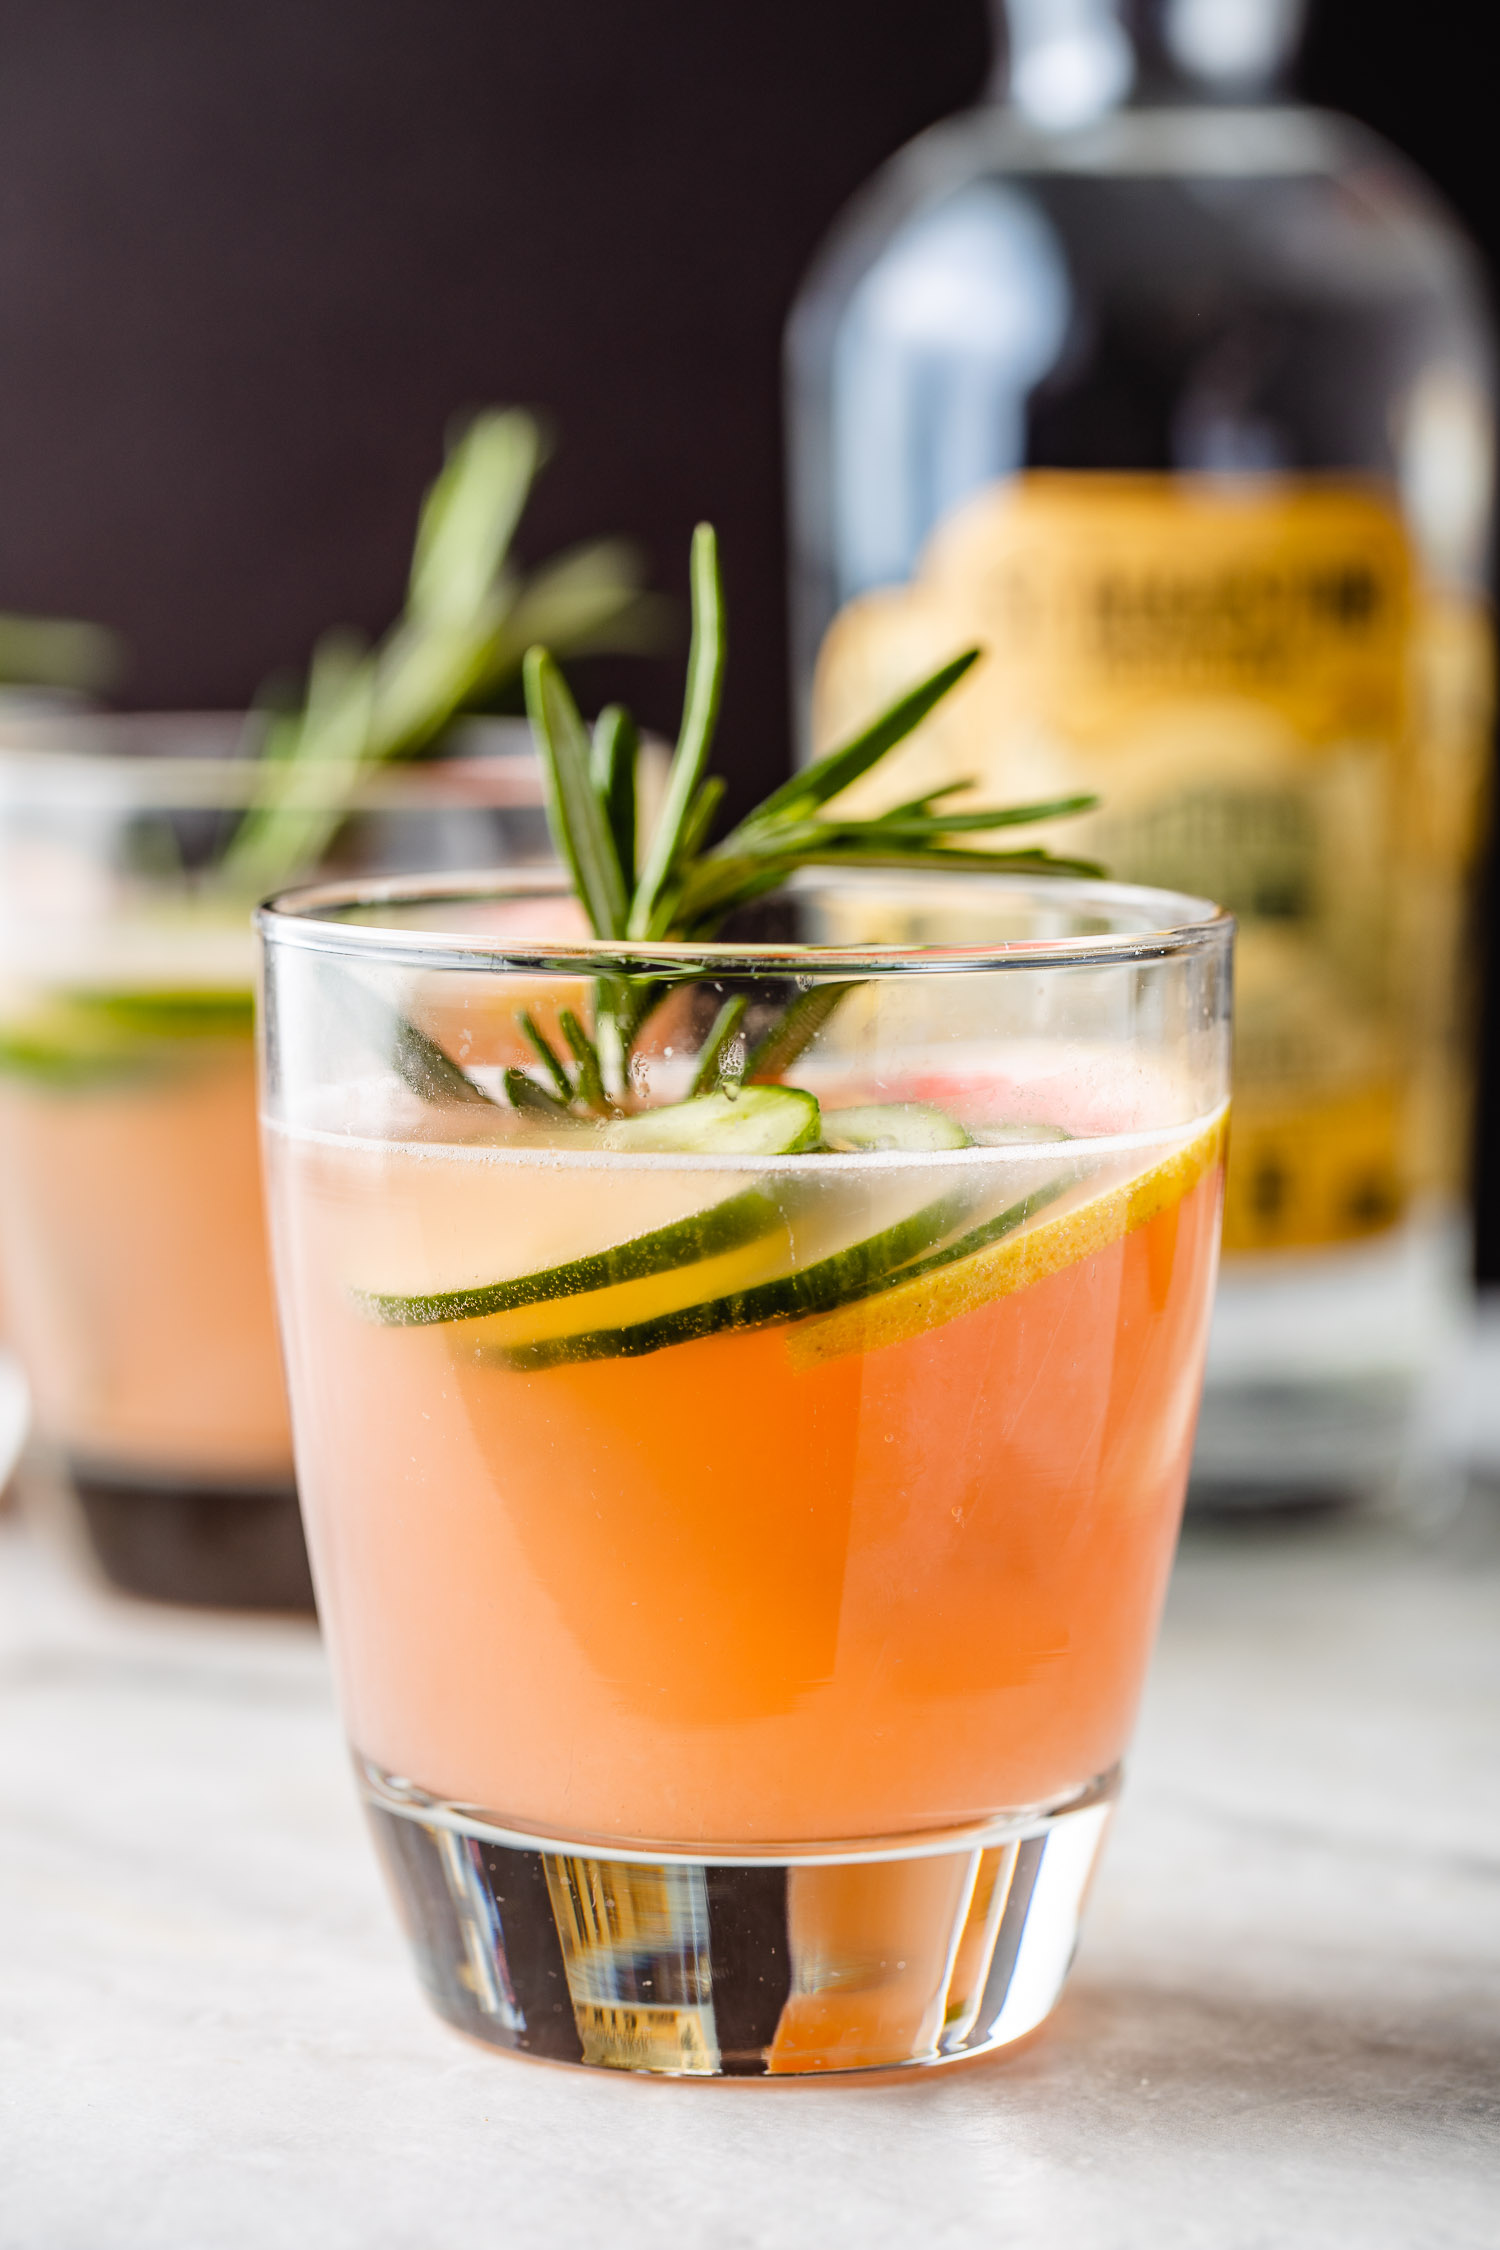 gin and juice mixed drinks made with pink grapefruit juice